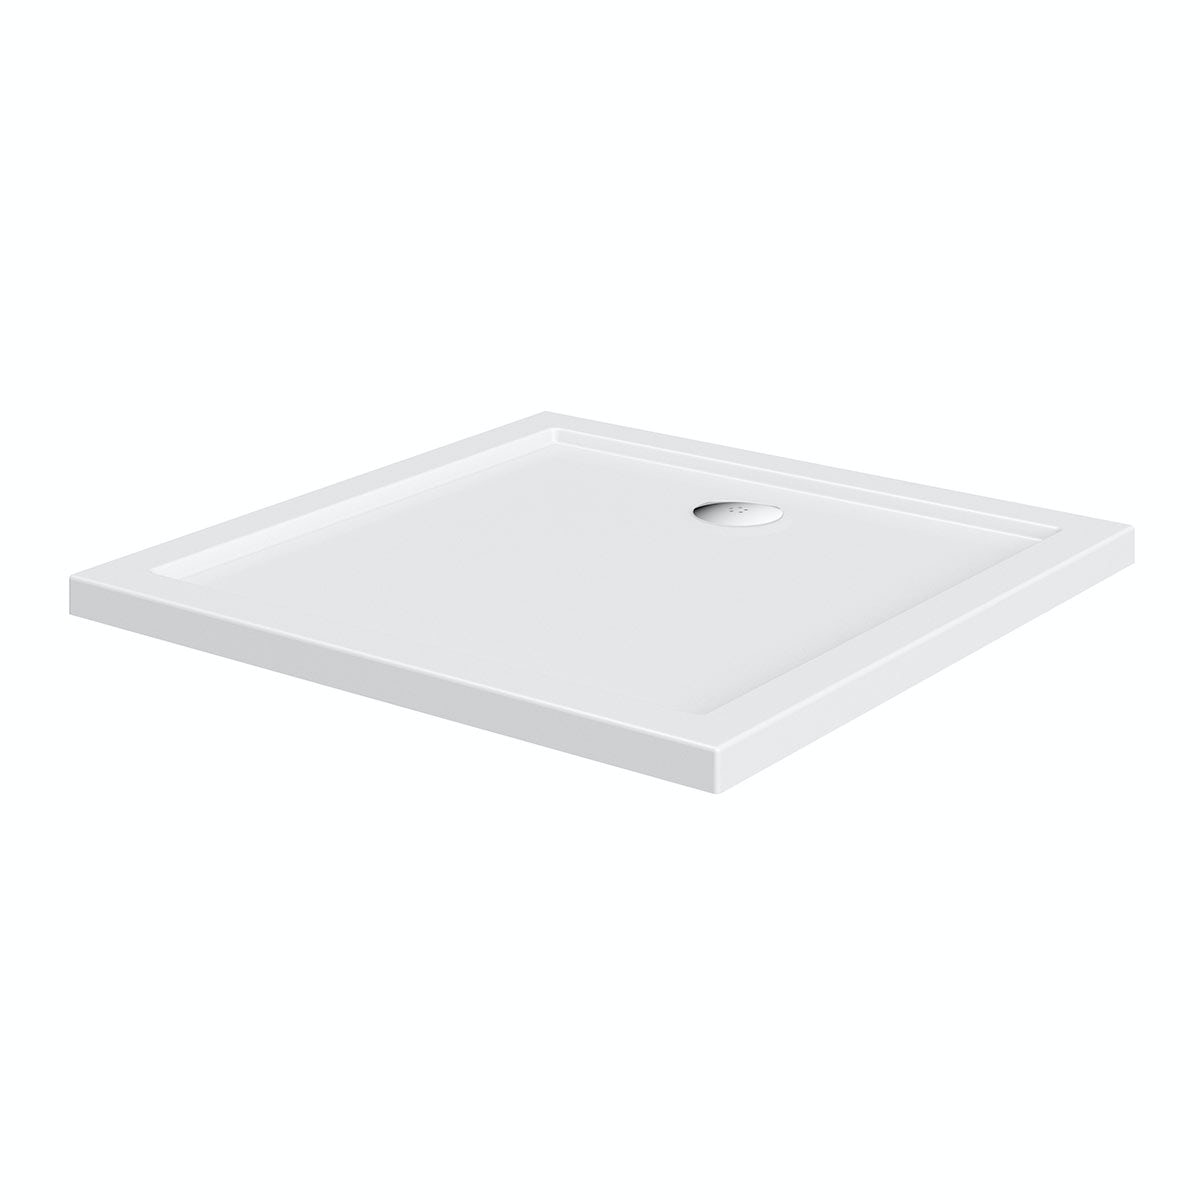 Orchard Square stone shower tray 760 x 760